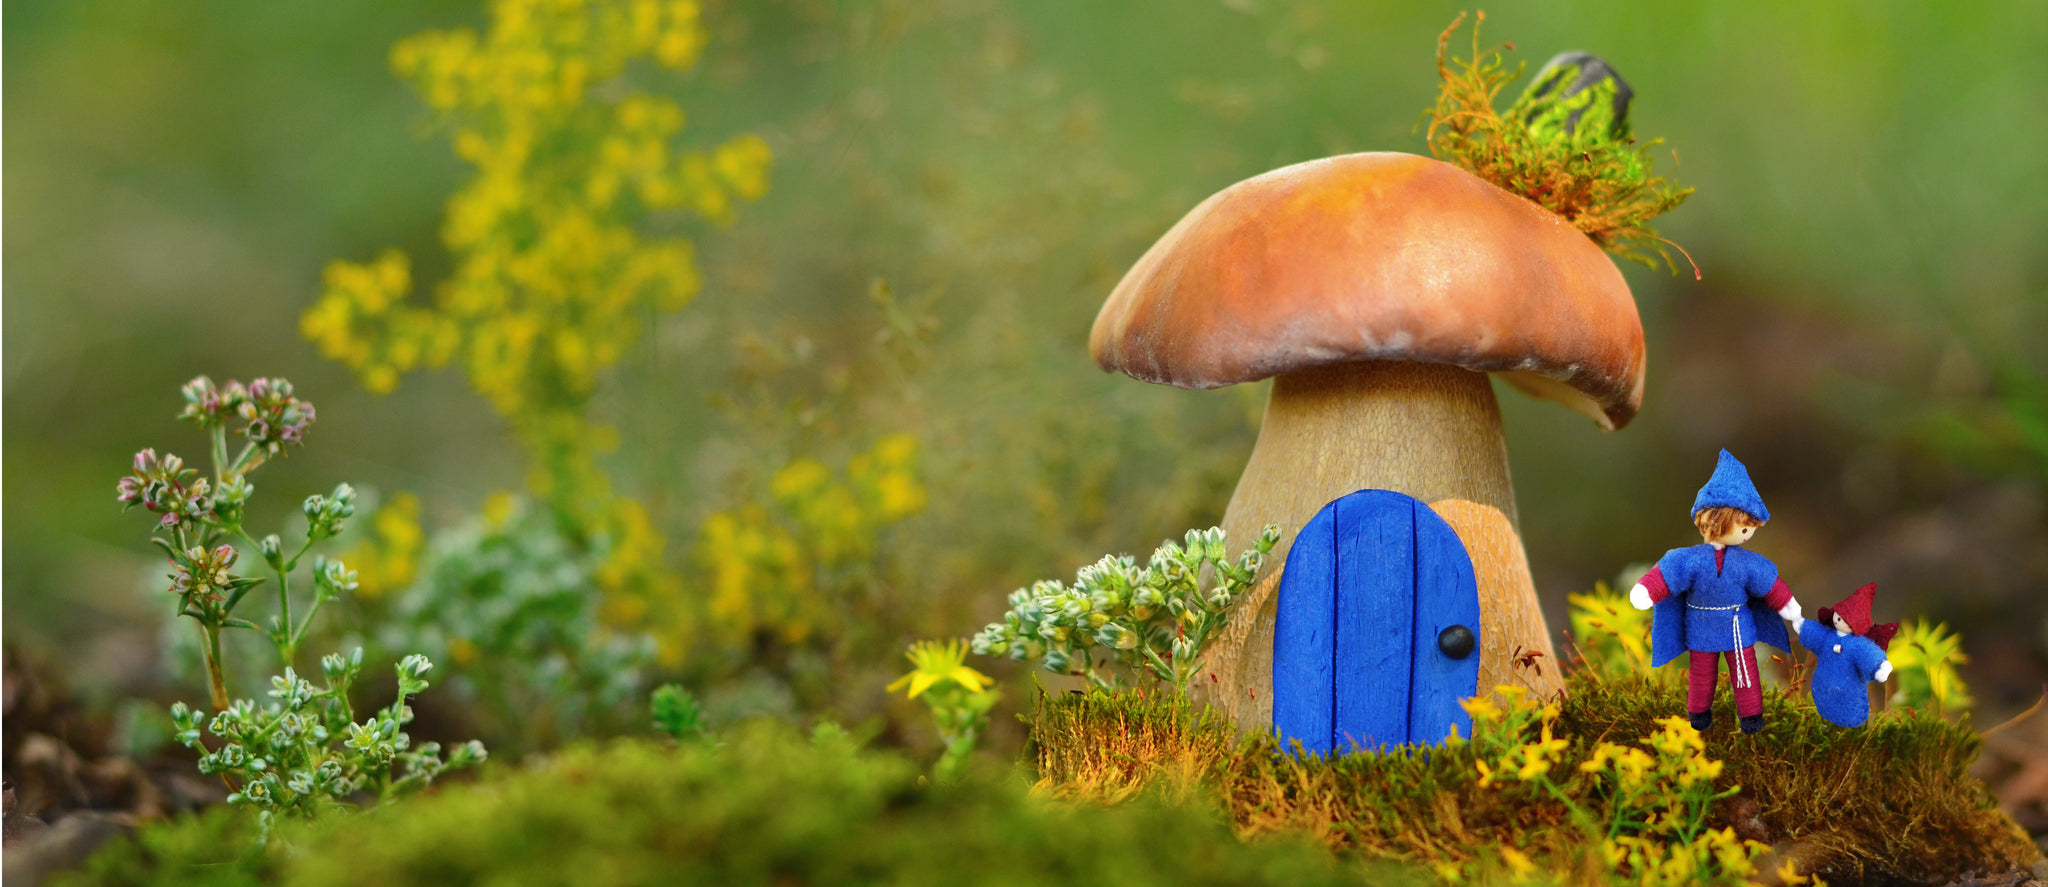 Mushroom Fairy house and fairy dolls